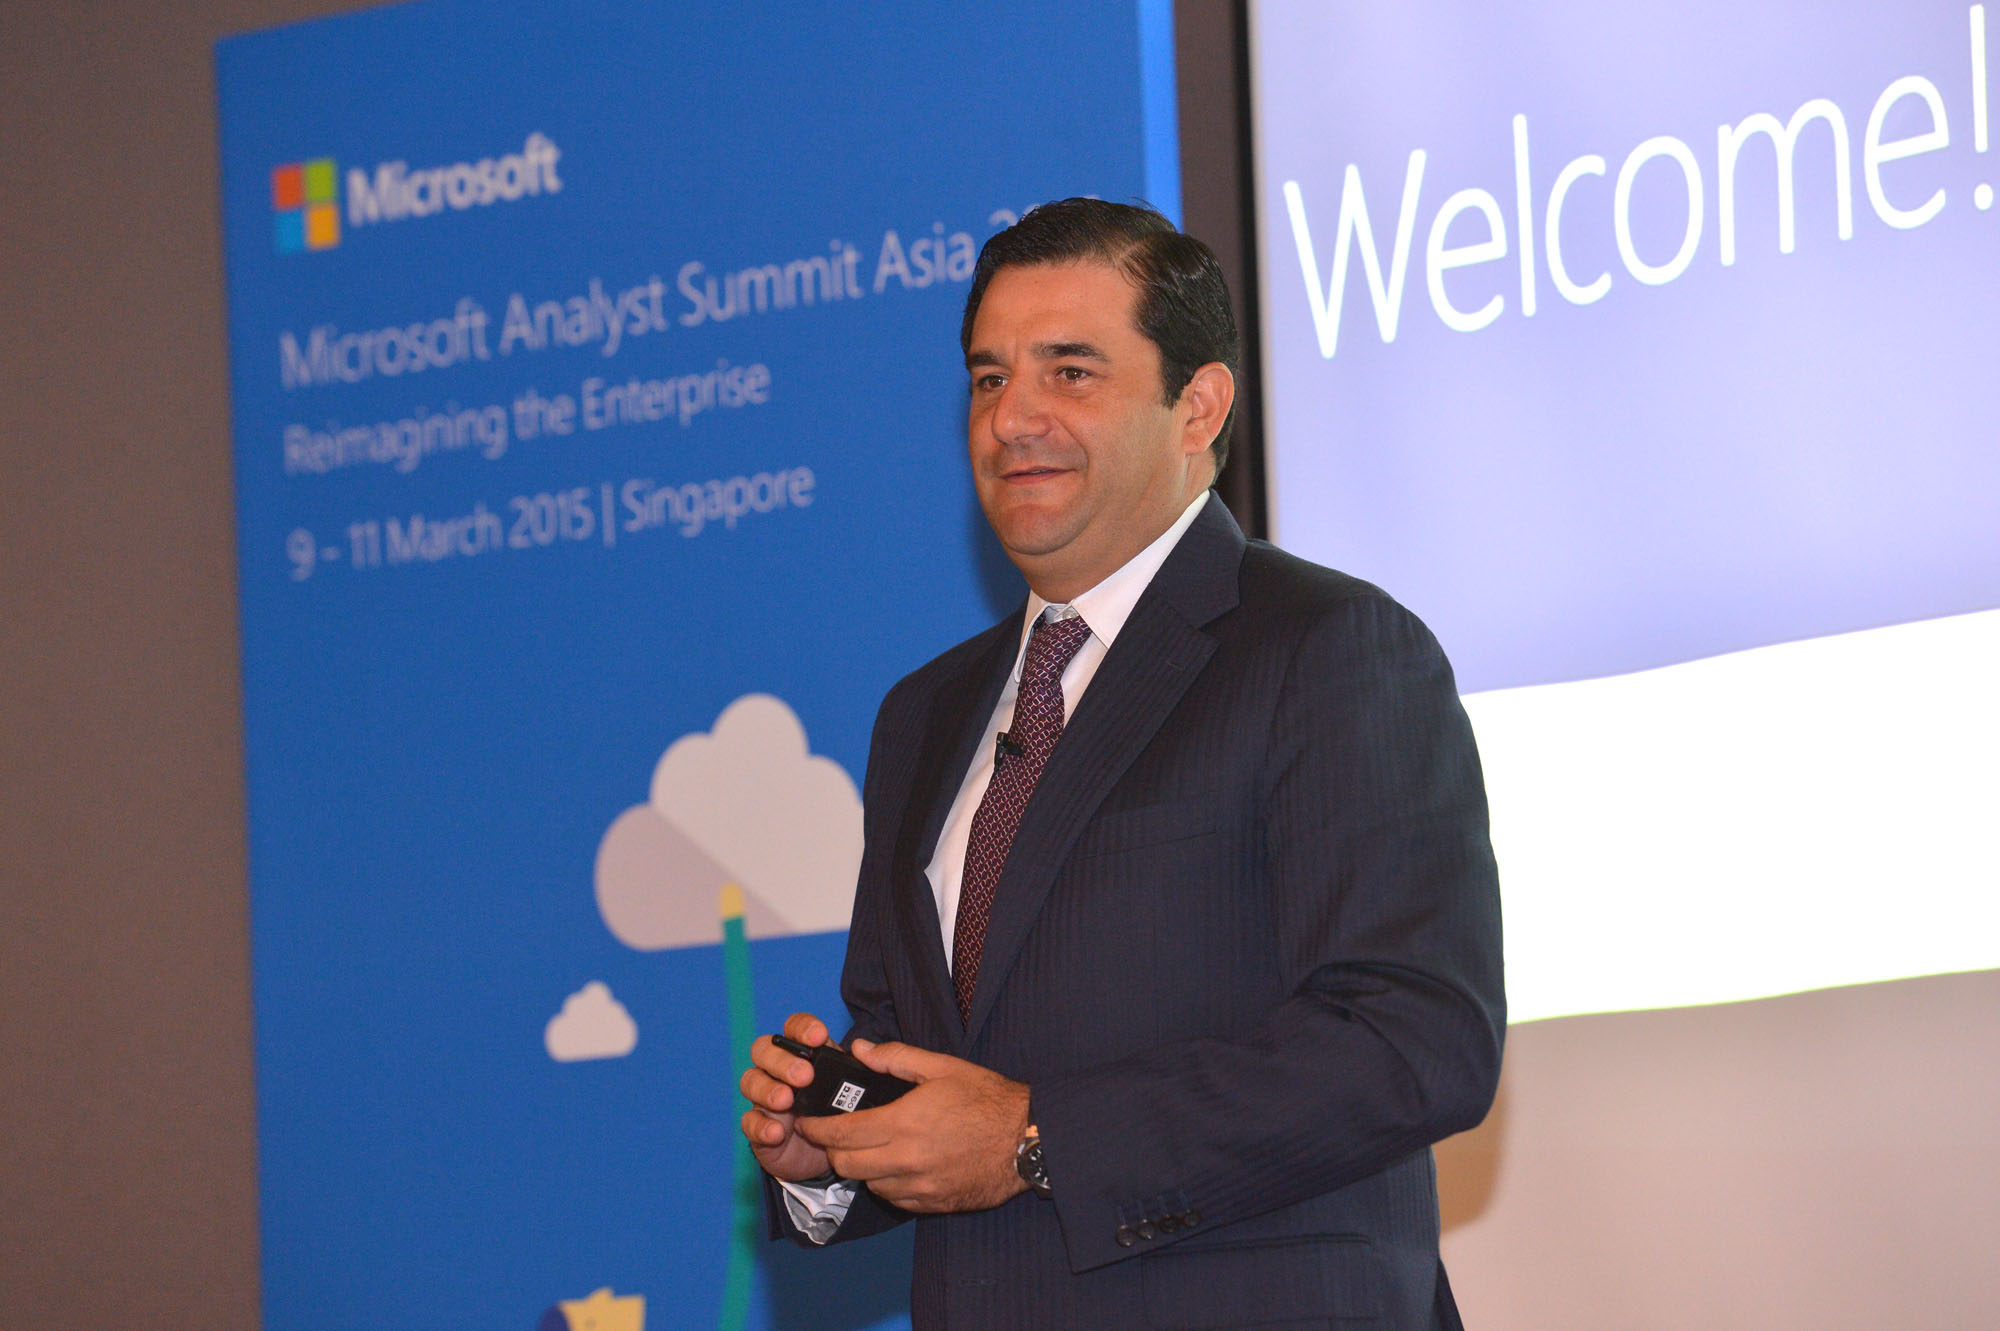 César Cernuda, President of Microsoft Asia Pacific, making the opening address at the Microsoft Analyst Summit Asia 2015.